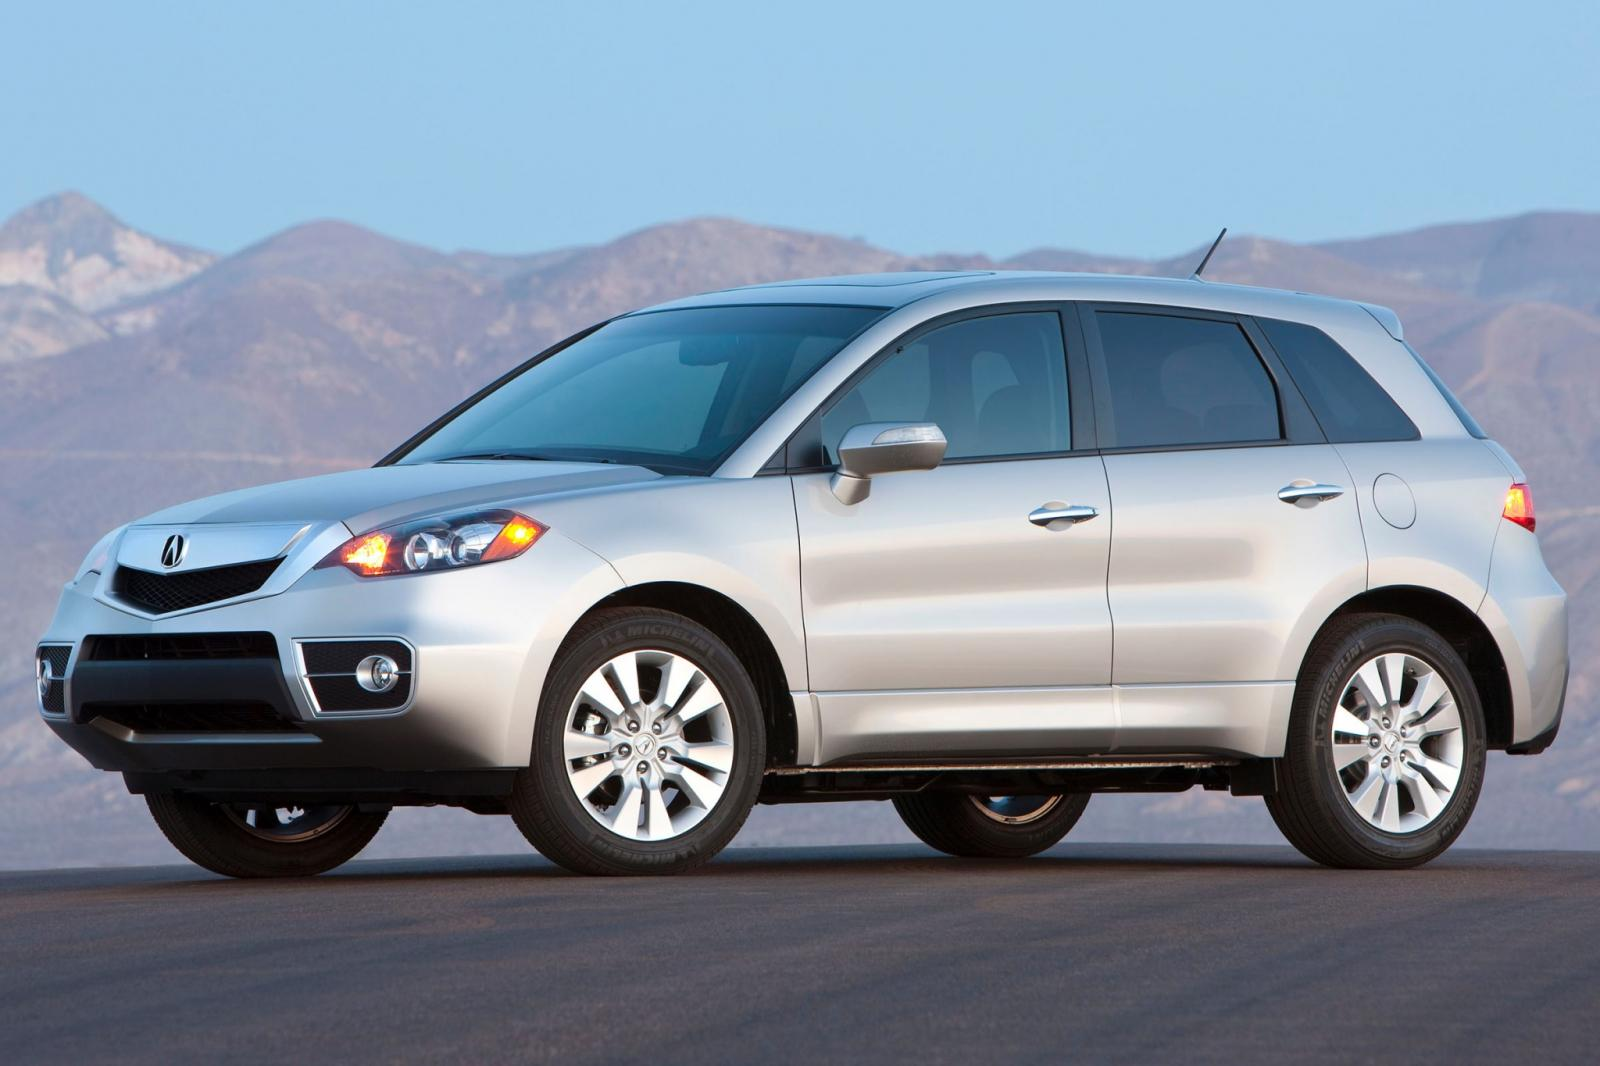 2011 acura rdx information and photos zombiedrive. Black Bedroom Furniture Sets. Home Design Ideas